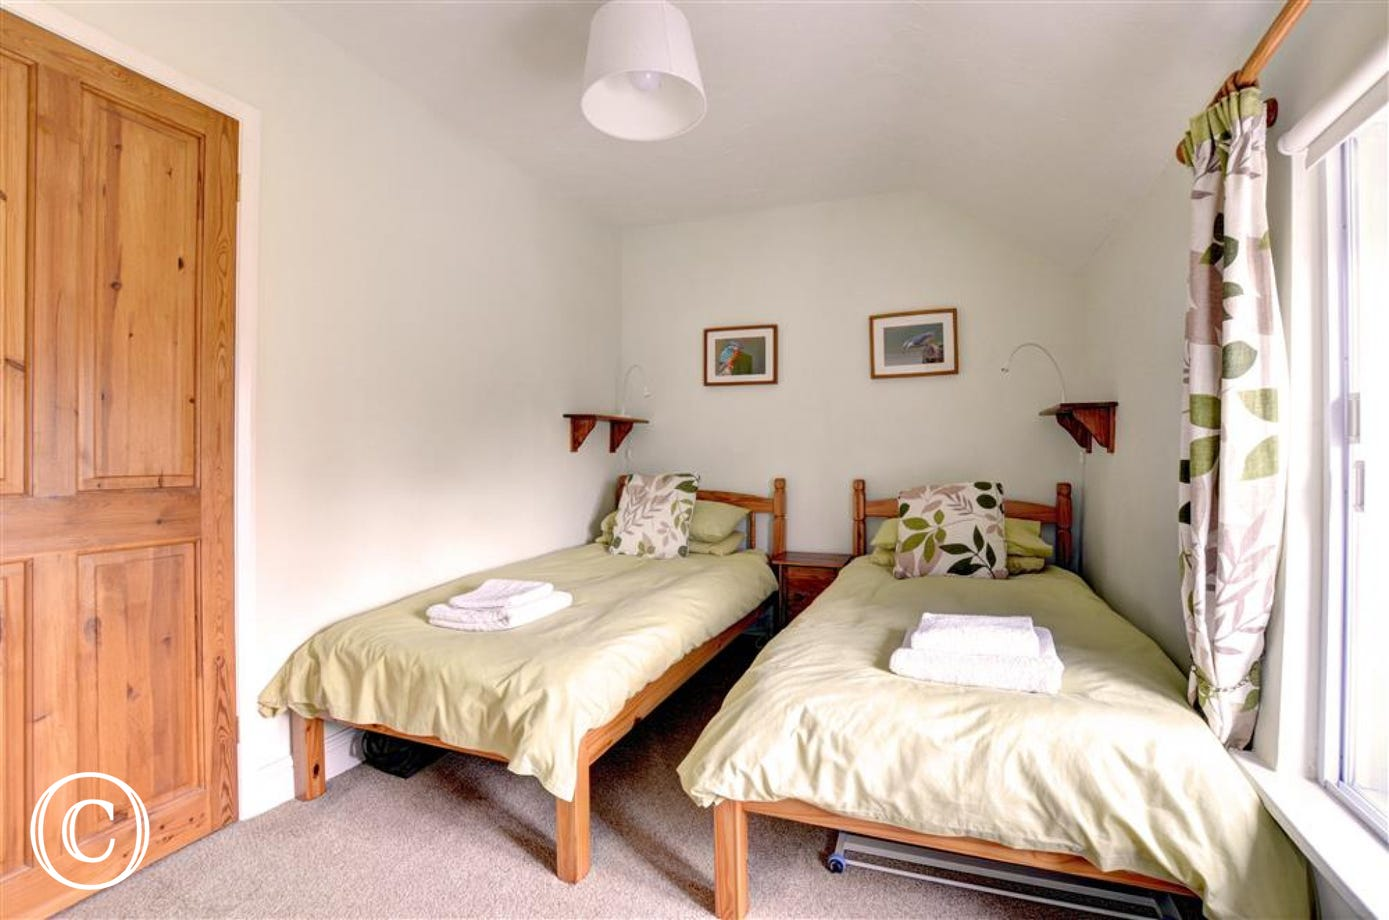 Twin bedded room, beds side by side, and window